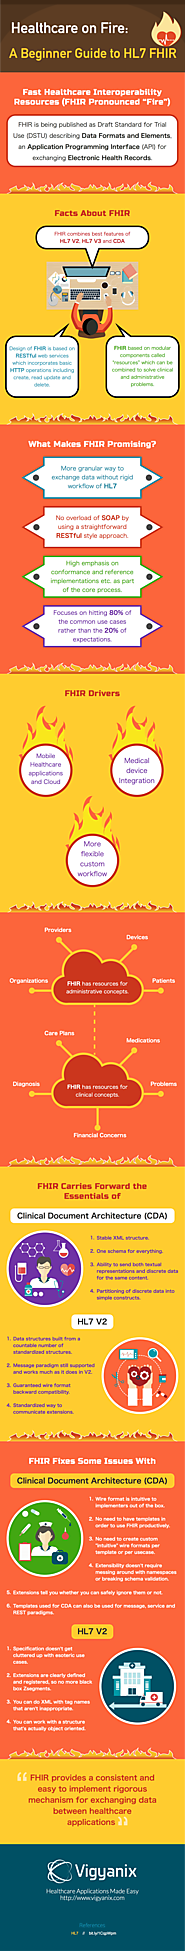 Healthcare on Fire: A Beginner Guide to HL7 FHIR [Infographic]